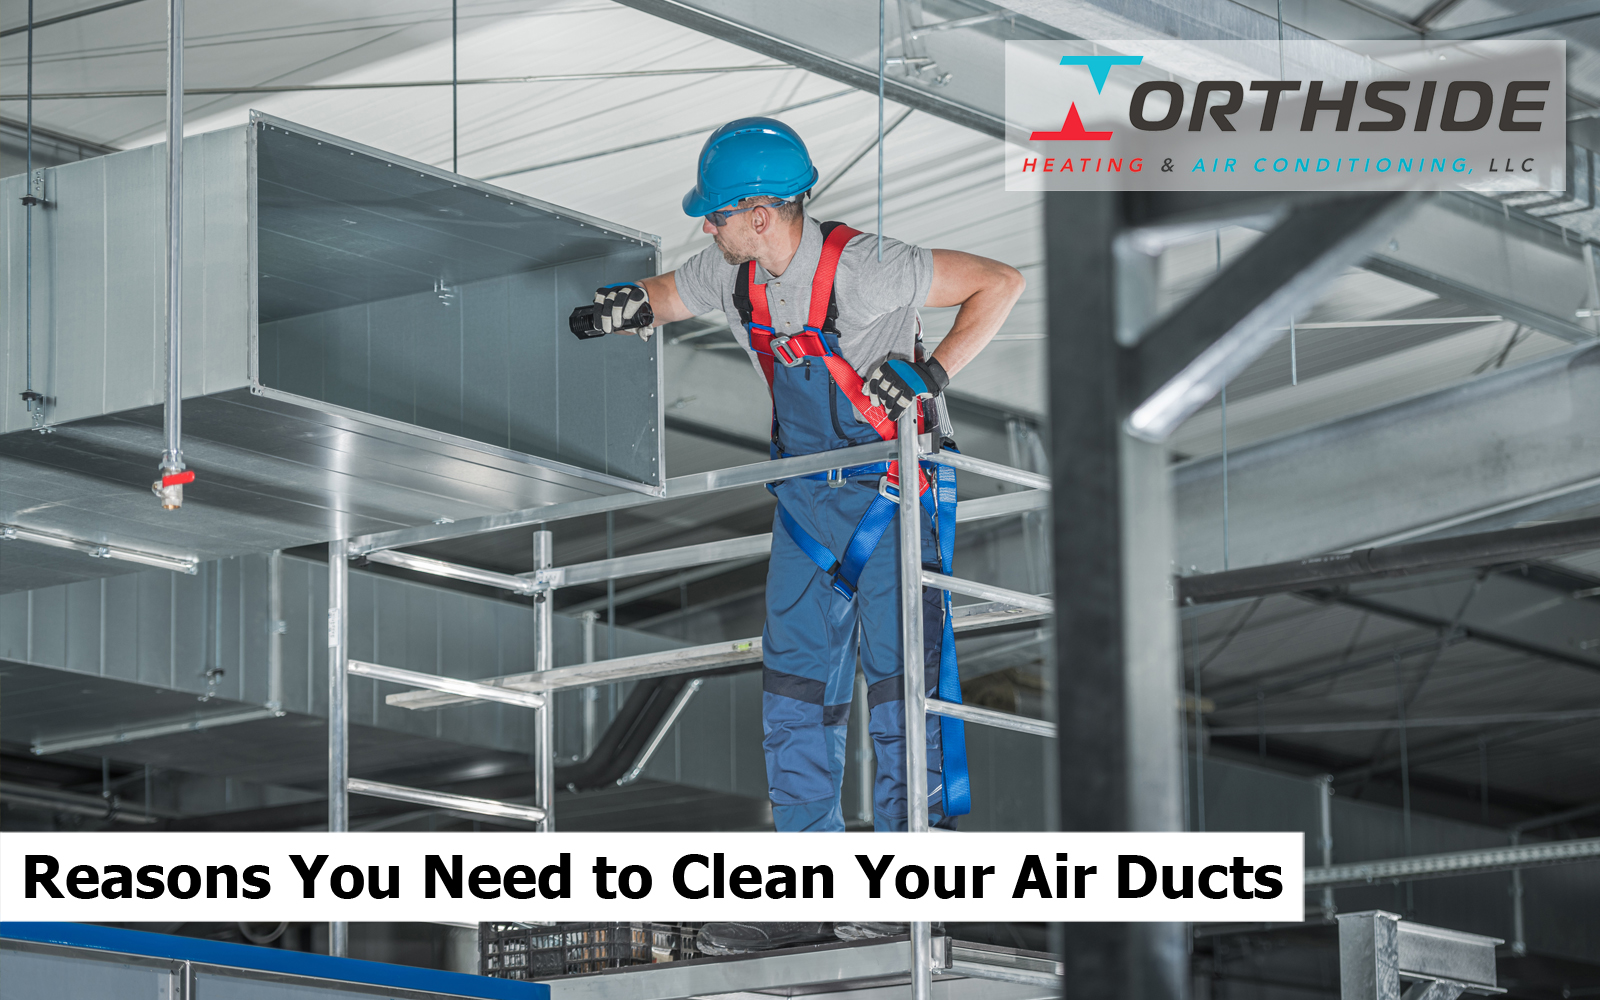 Reasons You Need to Clean Your Air Ducts